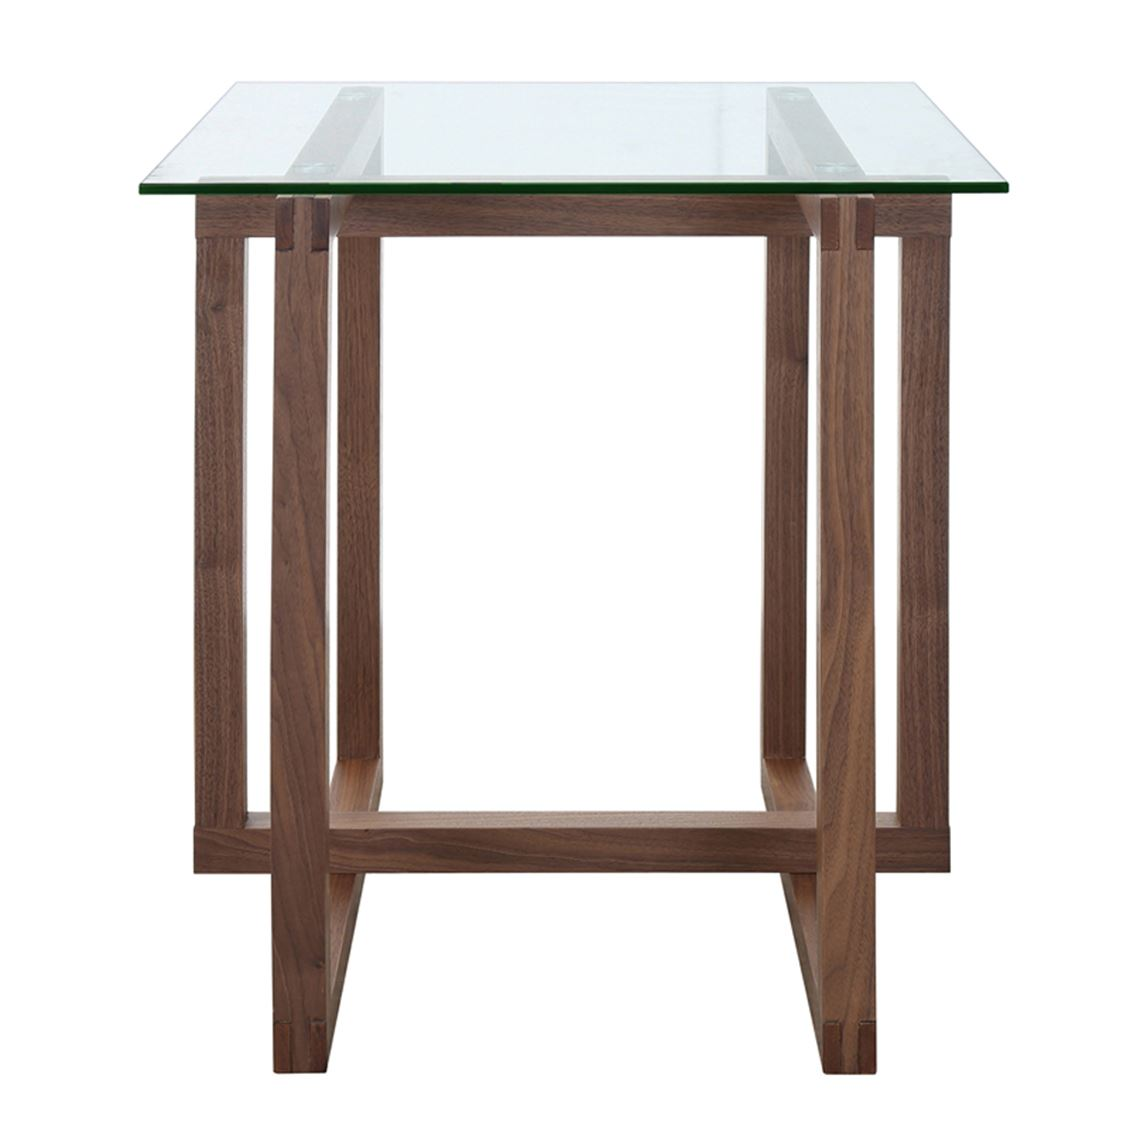 covers side table small ideas inch tablecloths cloths round outdoor tablecloth accent decorating agreeable for full size rectangle fall runner patterns leather dining room chairs